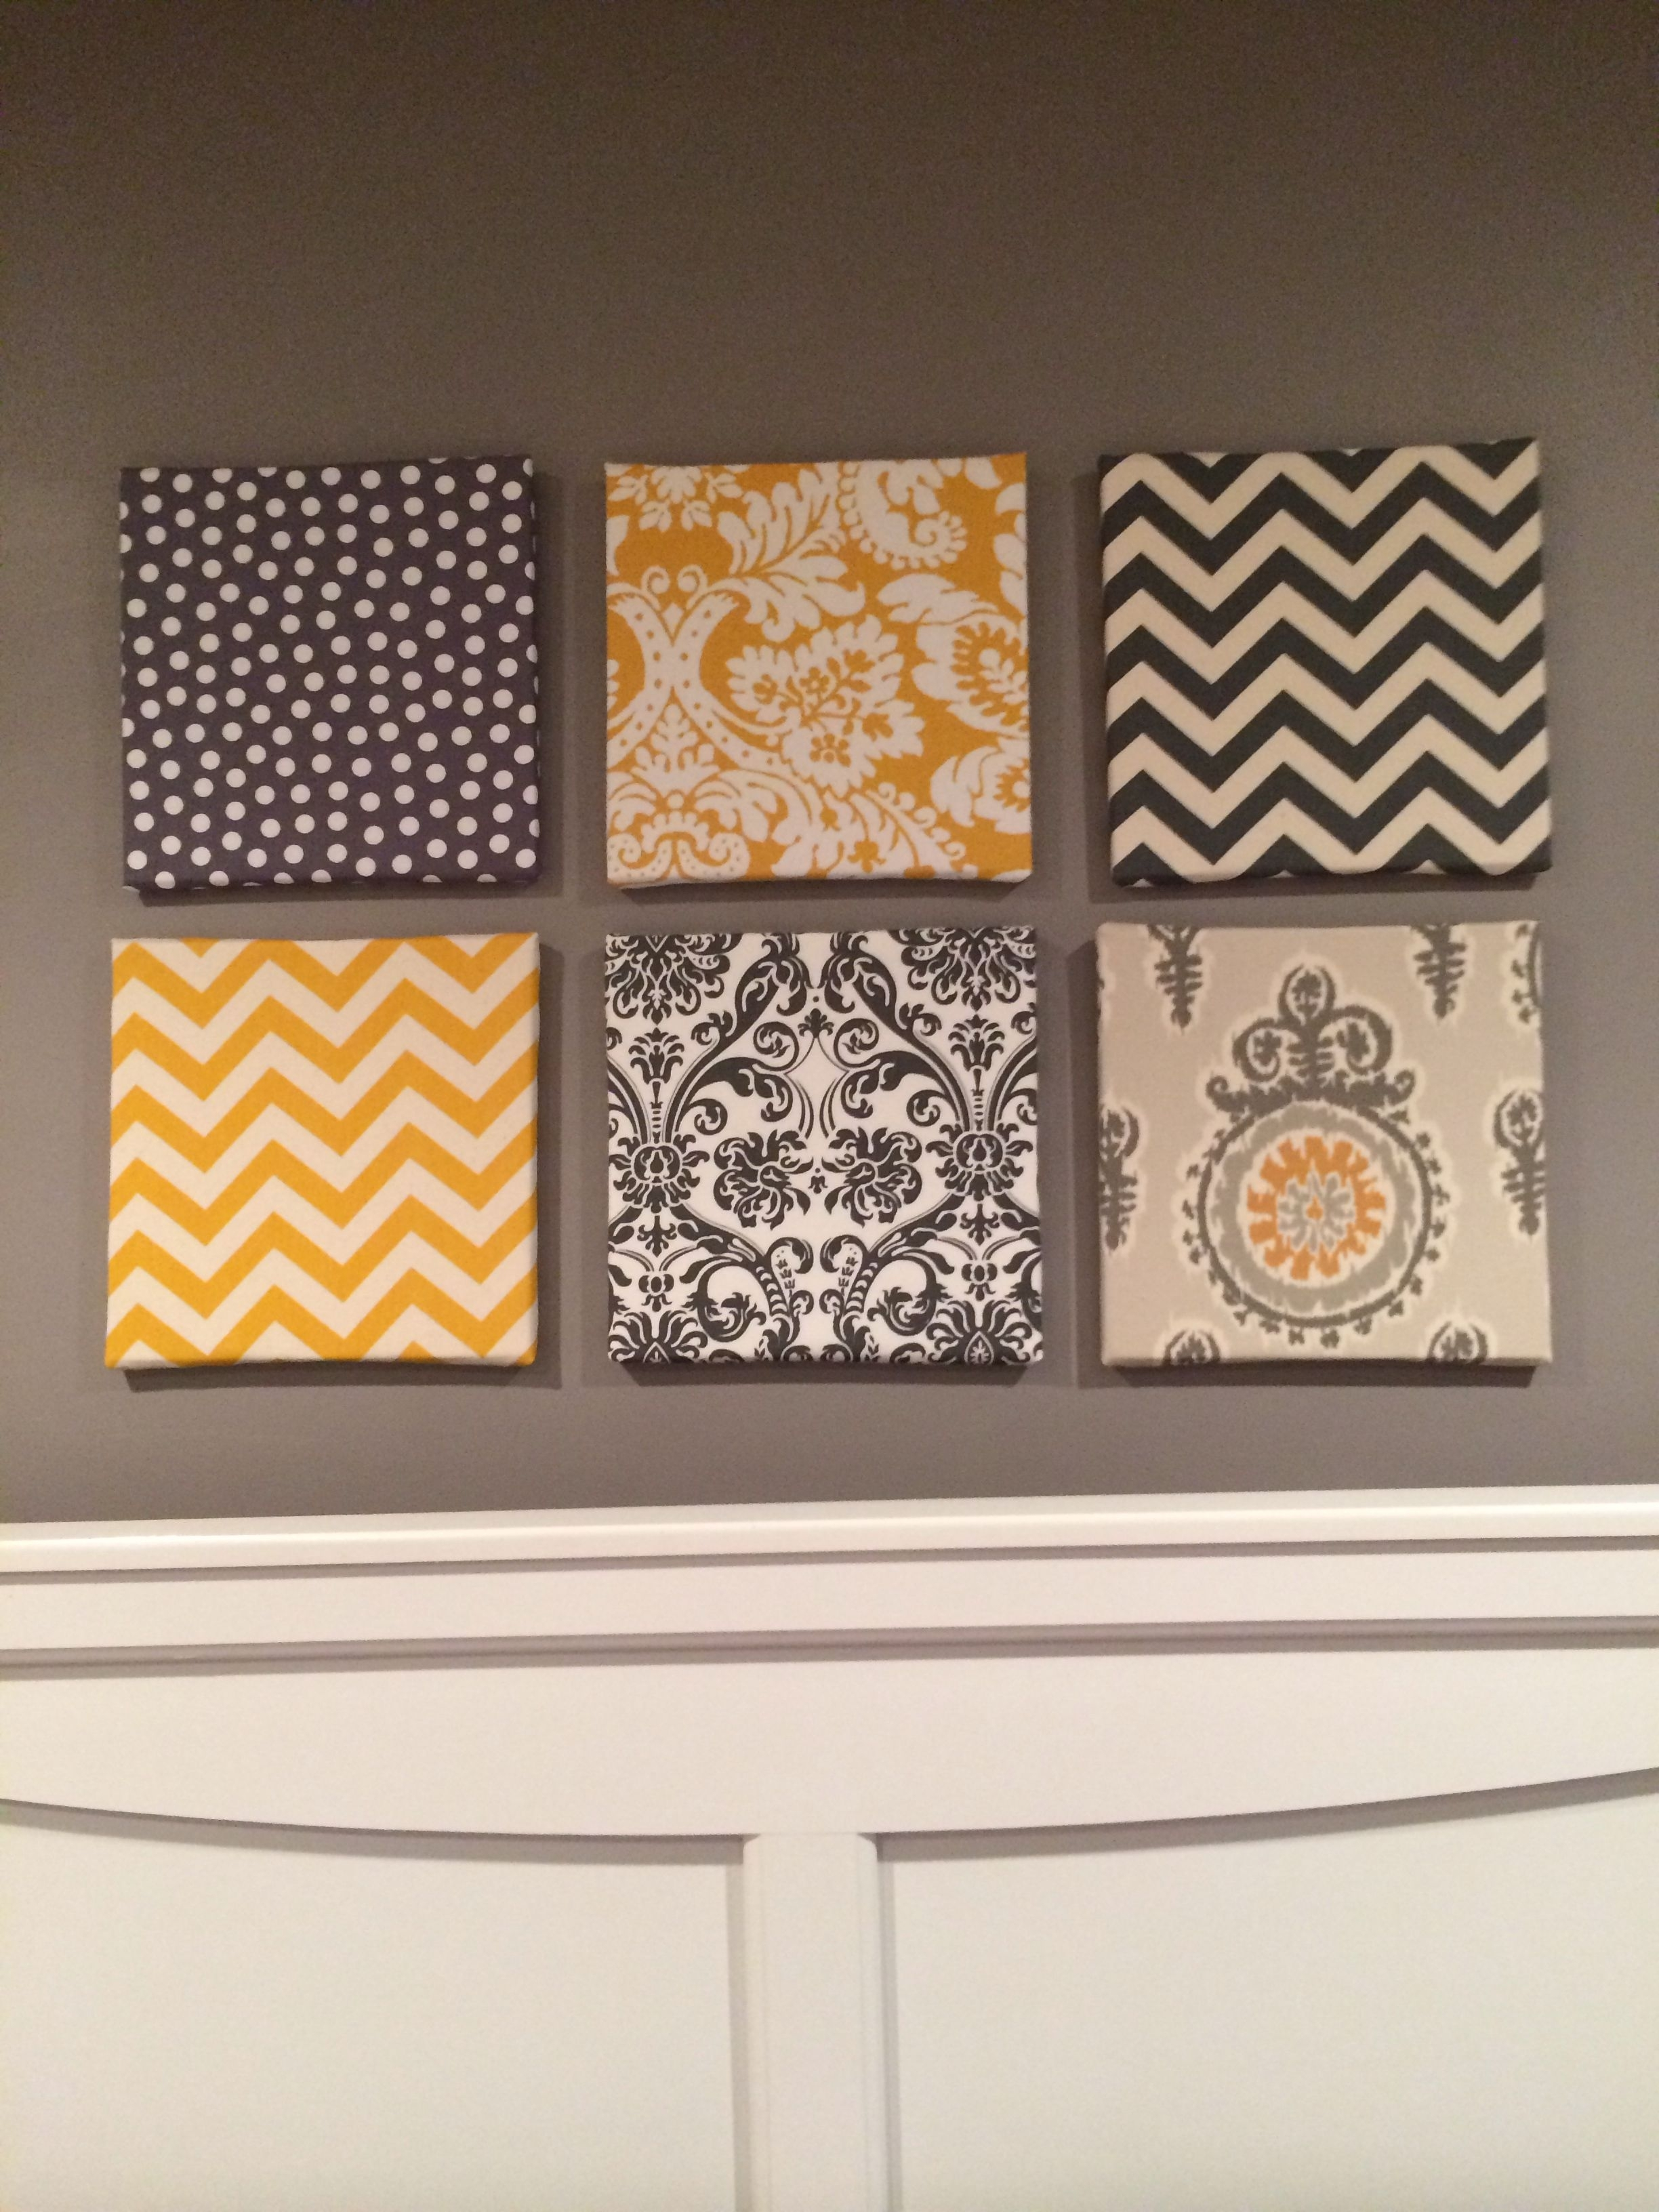 My Fabric Over Canvas Wall Art For My Gray And Yellow Themed Room Intended For Most Recent Bedroom Fabric Wall Art (Gallery 6 of 15)